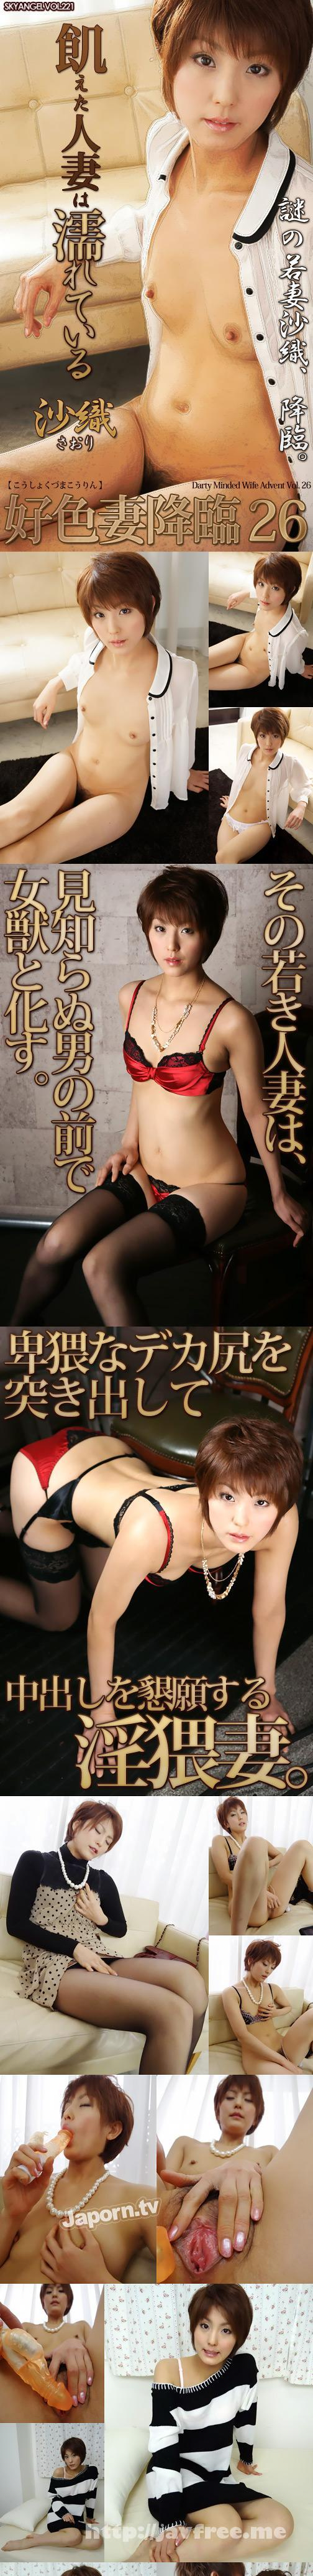 [SKY-221] 好色妻降臨 Vol.26 : 沙織 - image SKY-221_1 on https://javfree.me